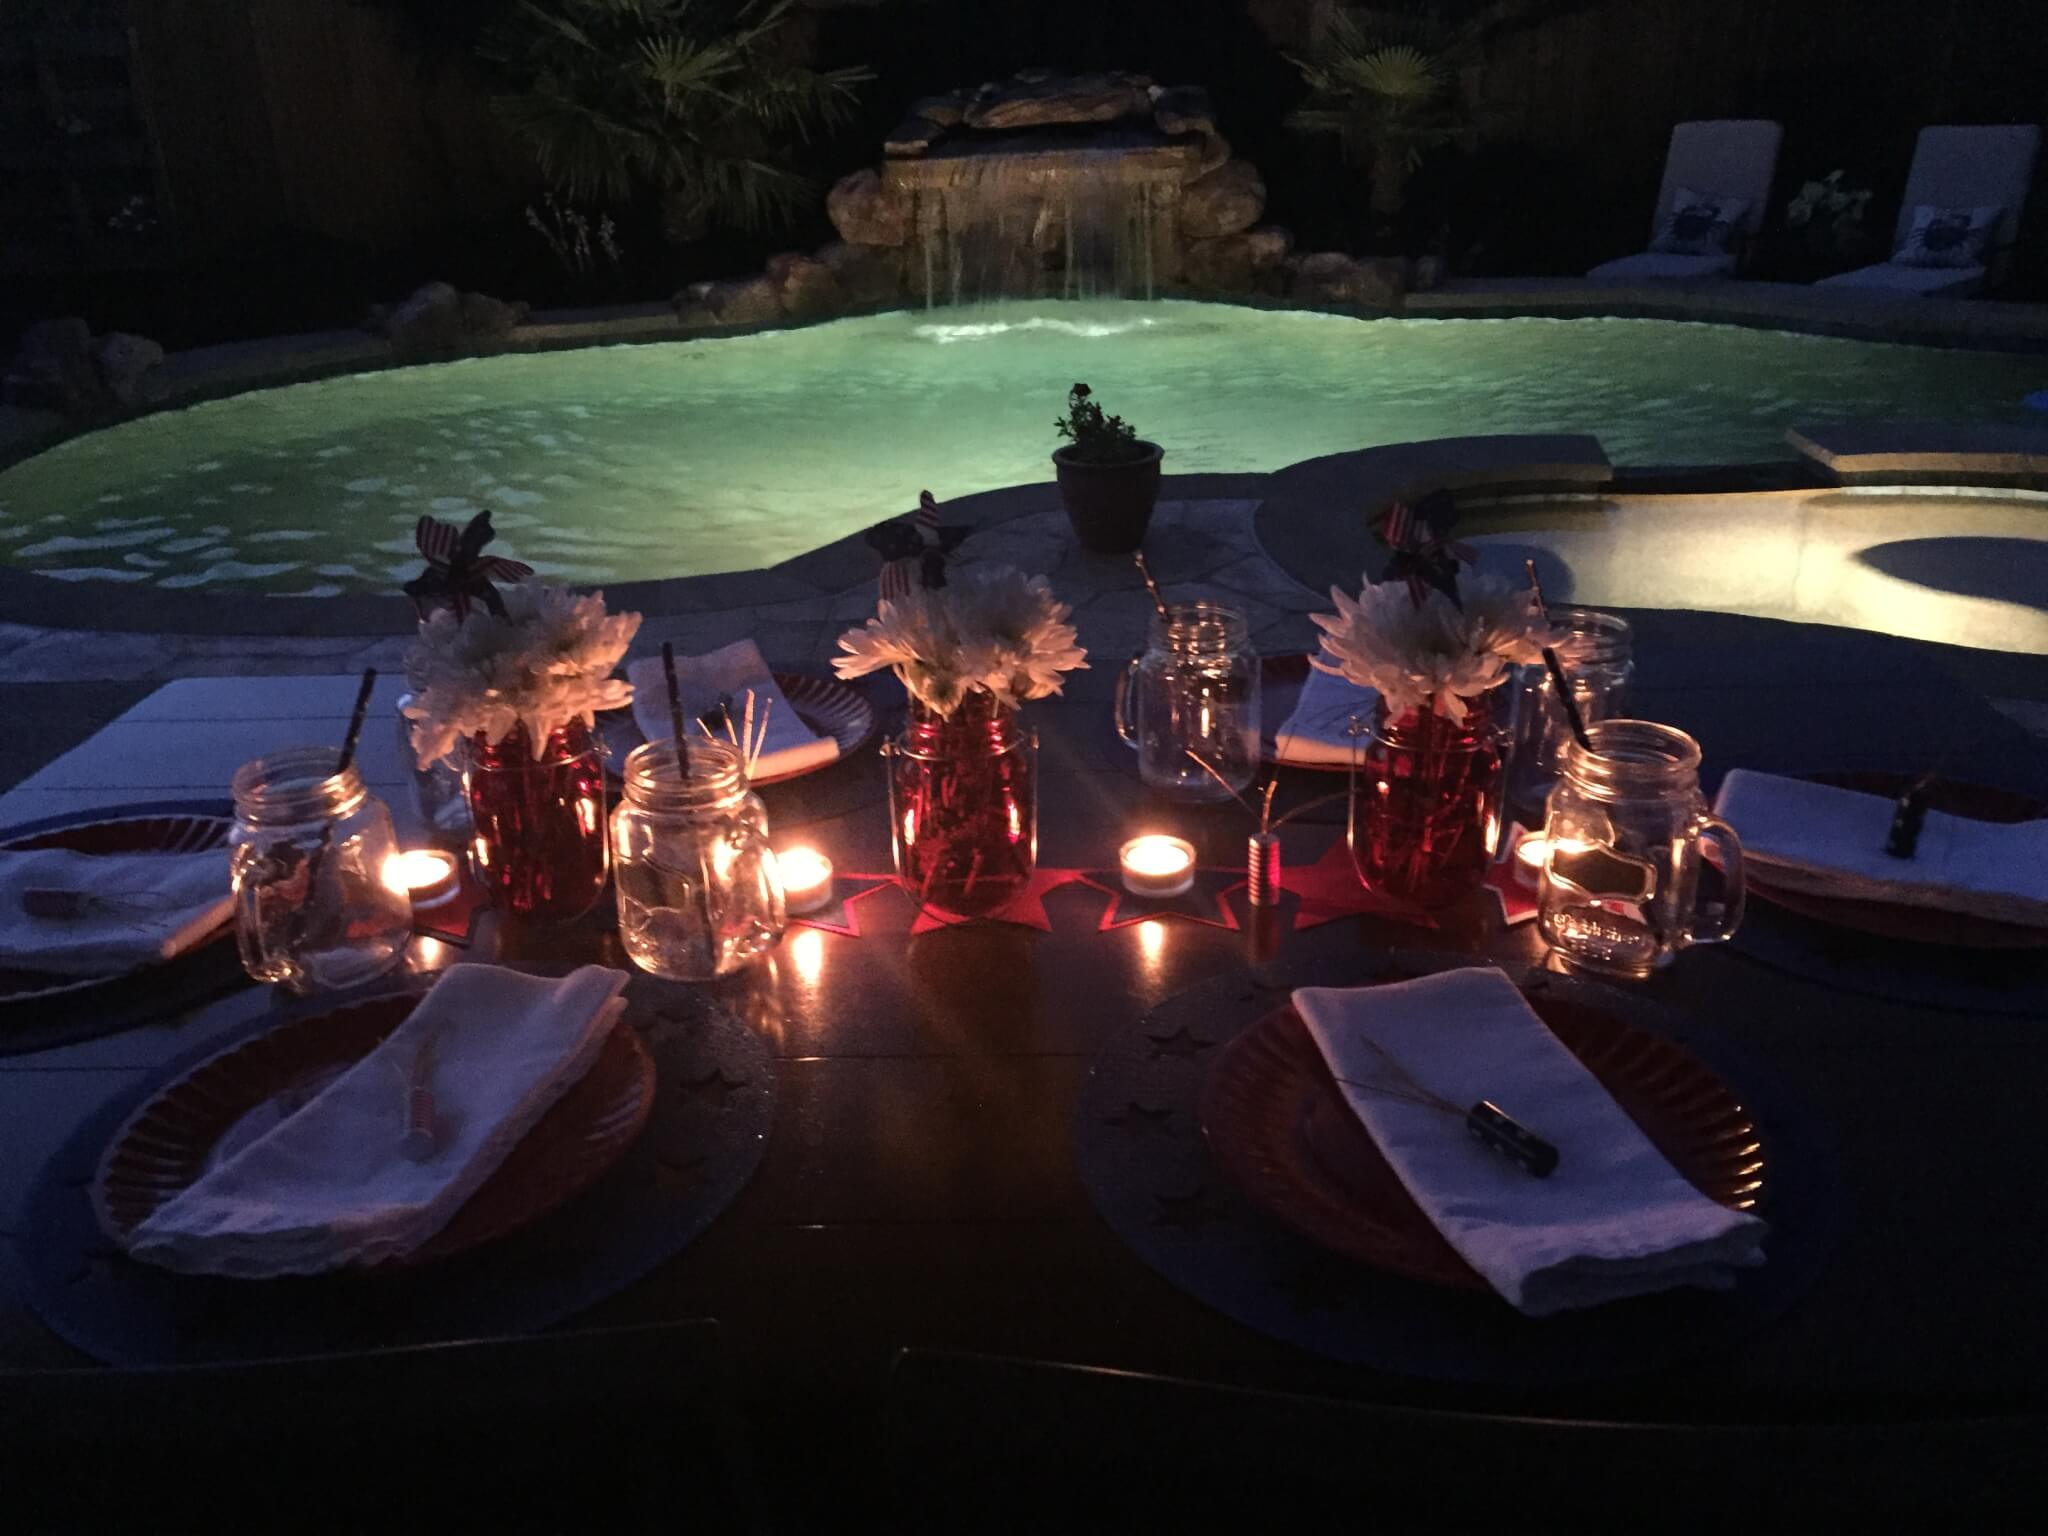 Evening view of patriotic tablescape on patio in front of lit up pool.